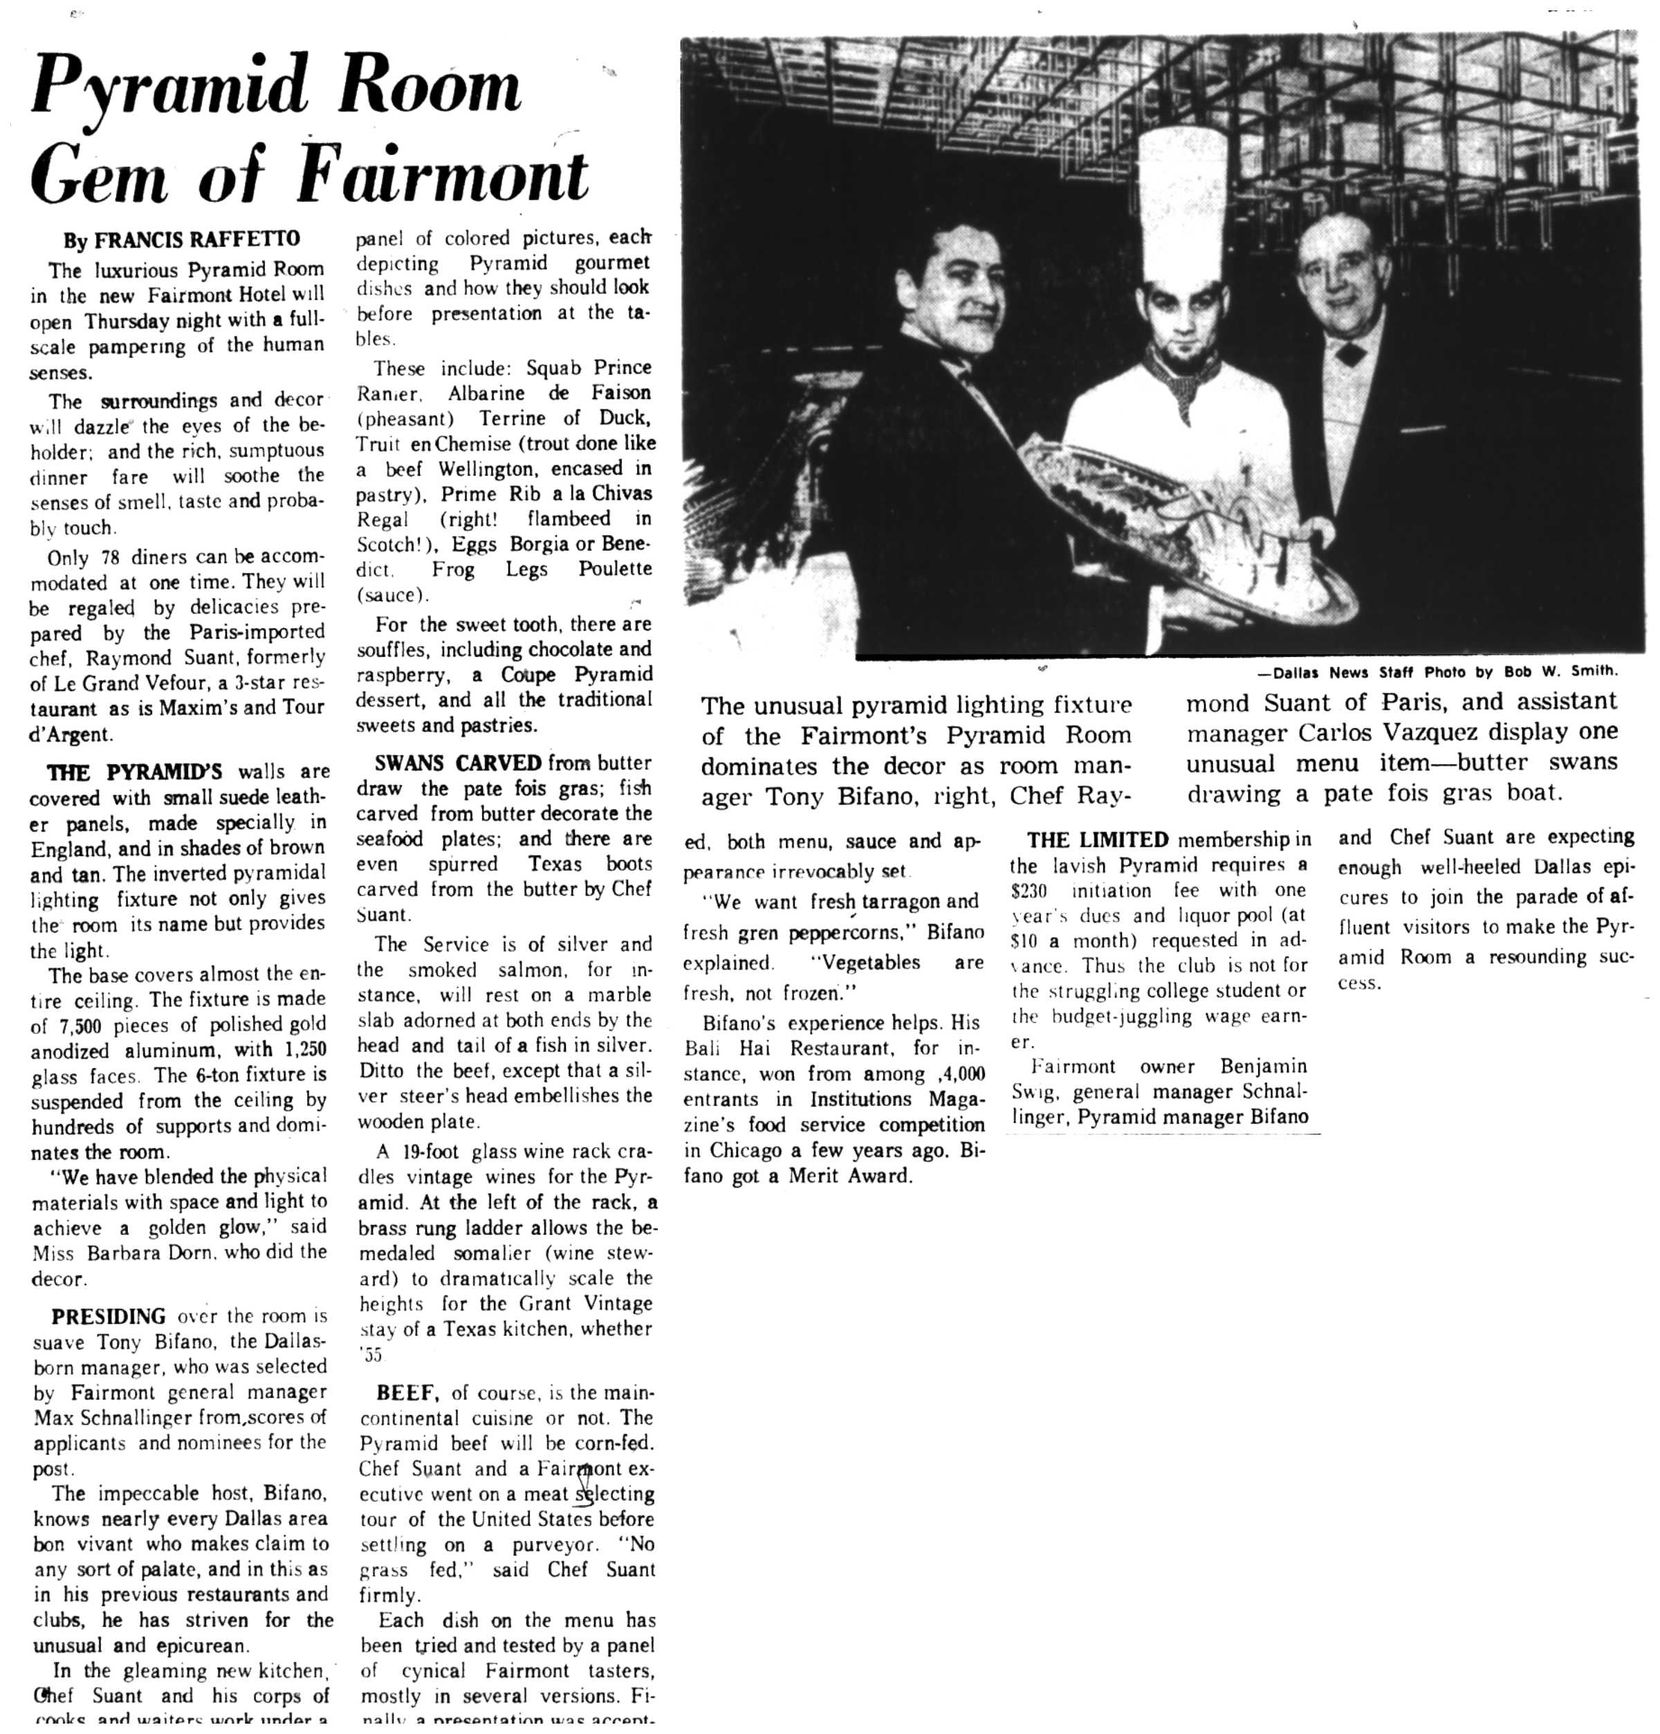 """A 1968 Dallas Morning News feature trumpeted the opening of the Pyramid Room in the Fairmont Hotel, anticipating a parade of """"well-heeled Dallas epicures."""""""